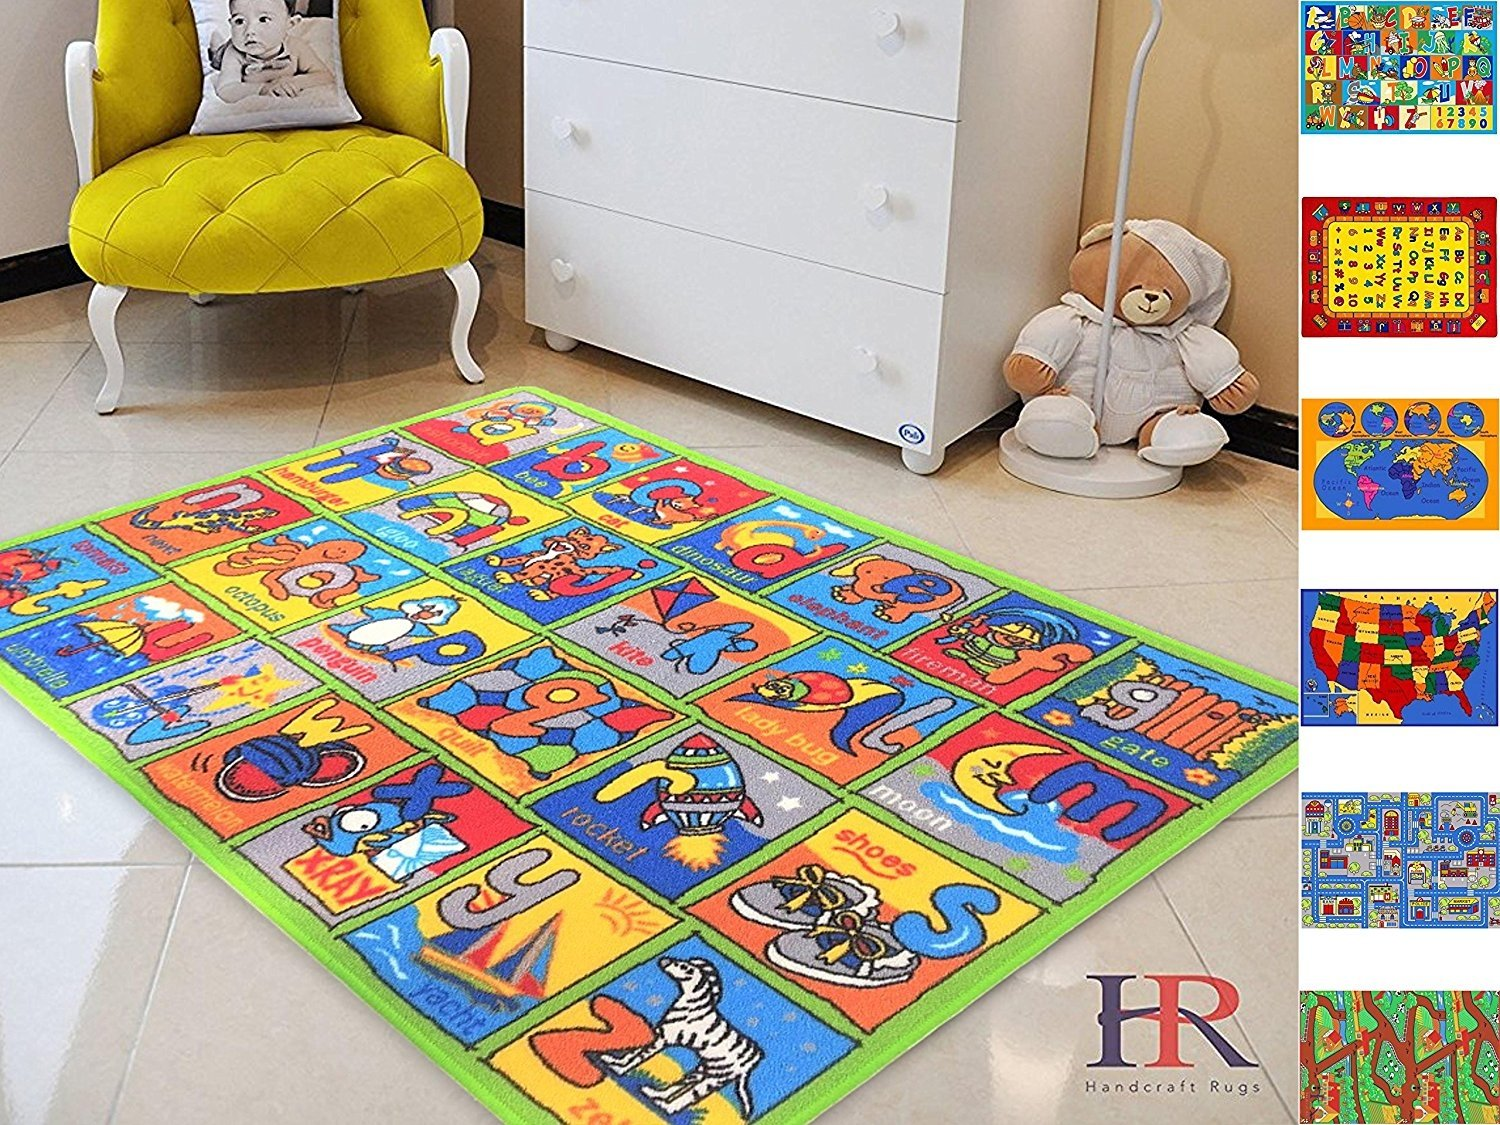 Handcraft Rugs Great for Playing with Cars and Toys Play Learn and Have Fun Safely Kids Rug Carpet Educational... by Handcraft Rugs